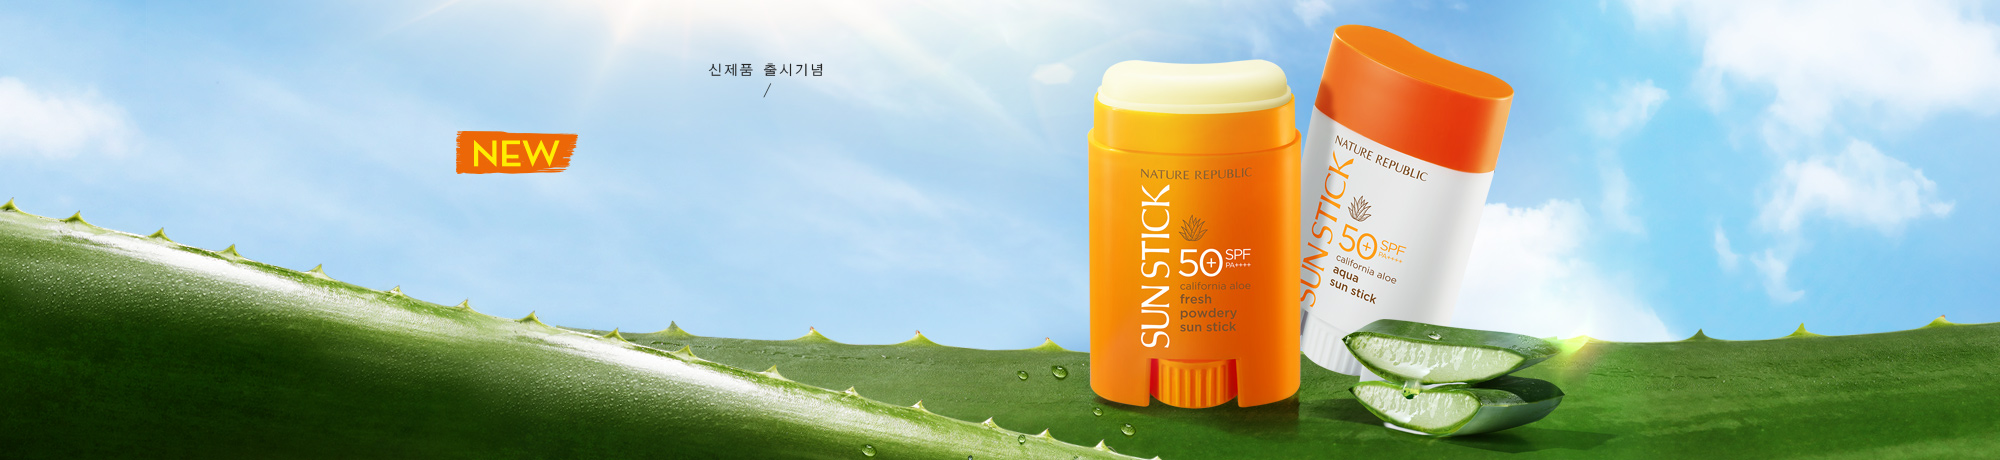 <span style='color: #252525;'>캘리포니아 알로에<br><span style='font-weight: 600;'>선스틱 출시!</span>